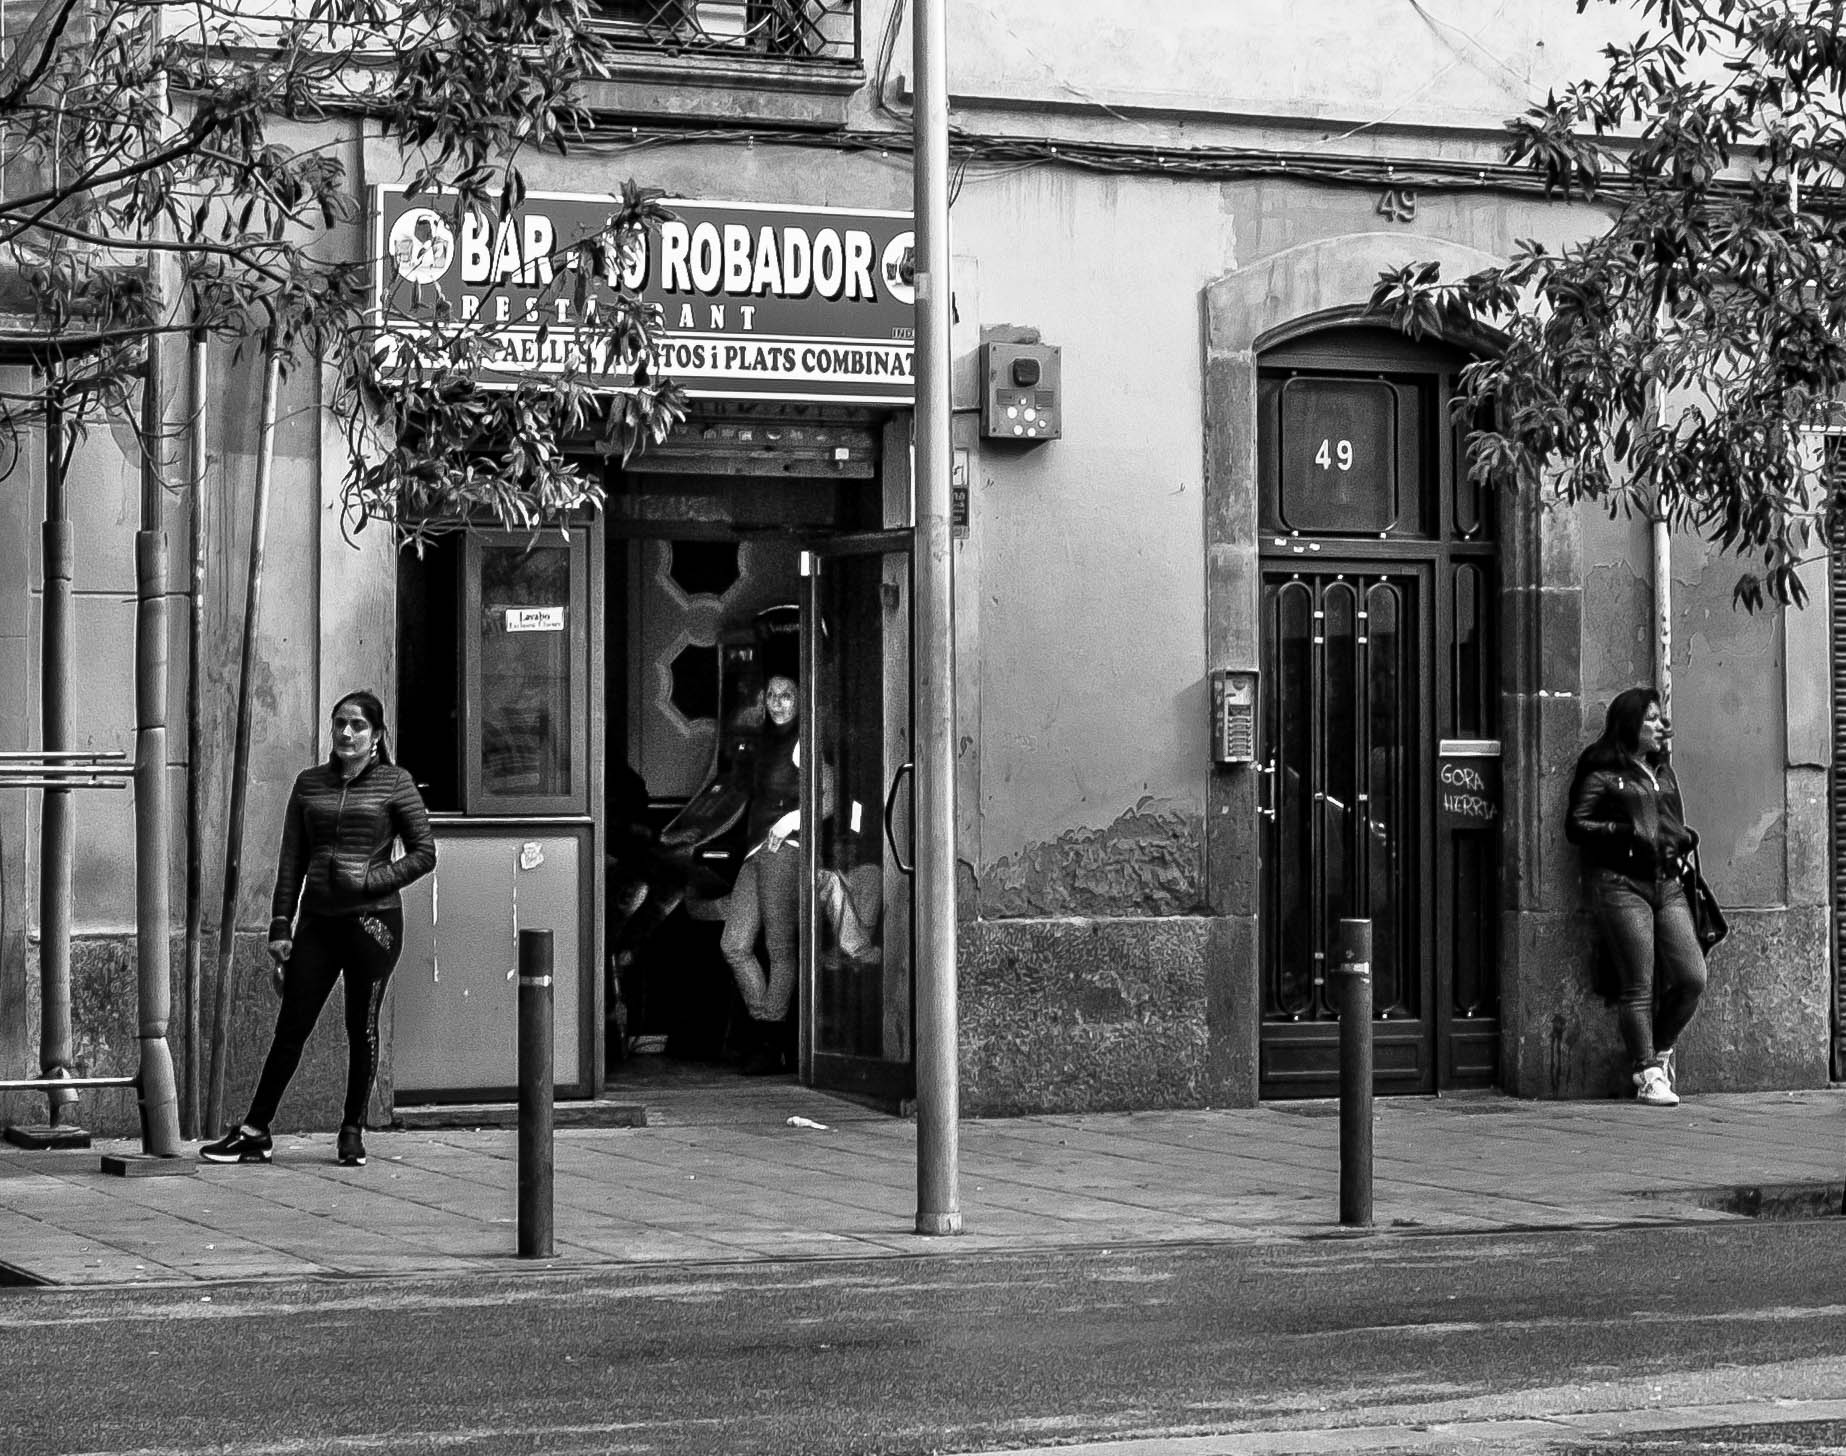 prostitutas en bulbao barrio prostitutas madrid